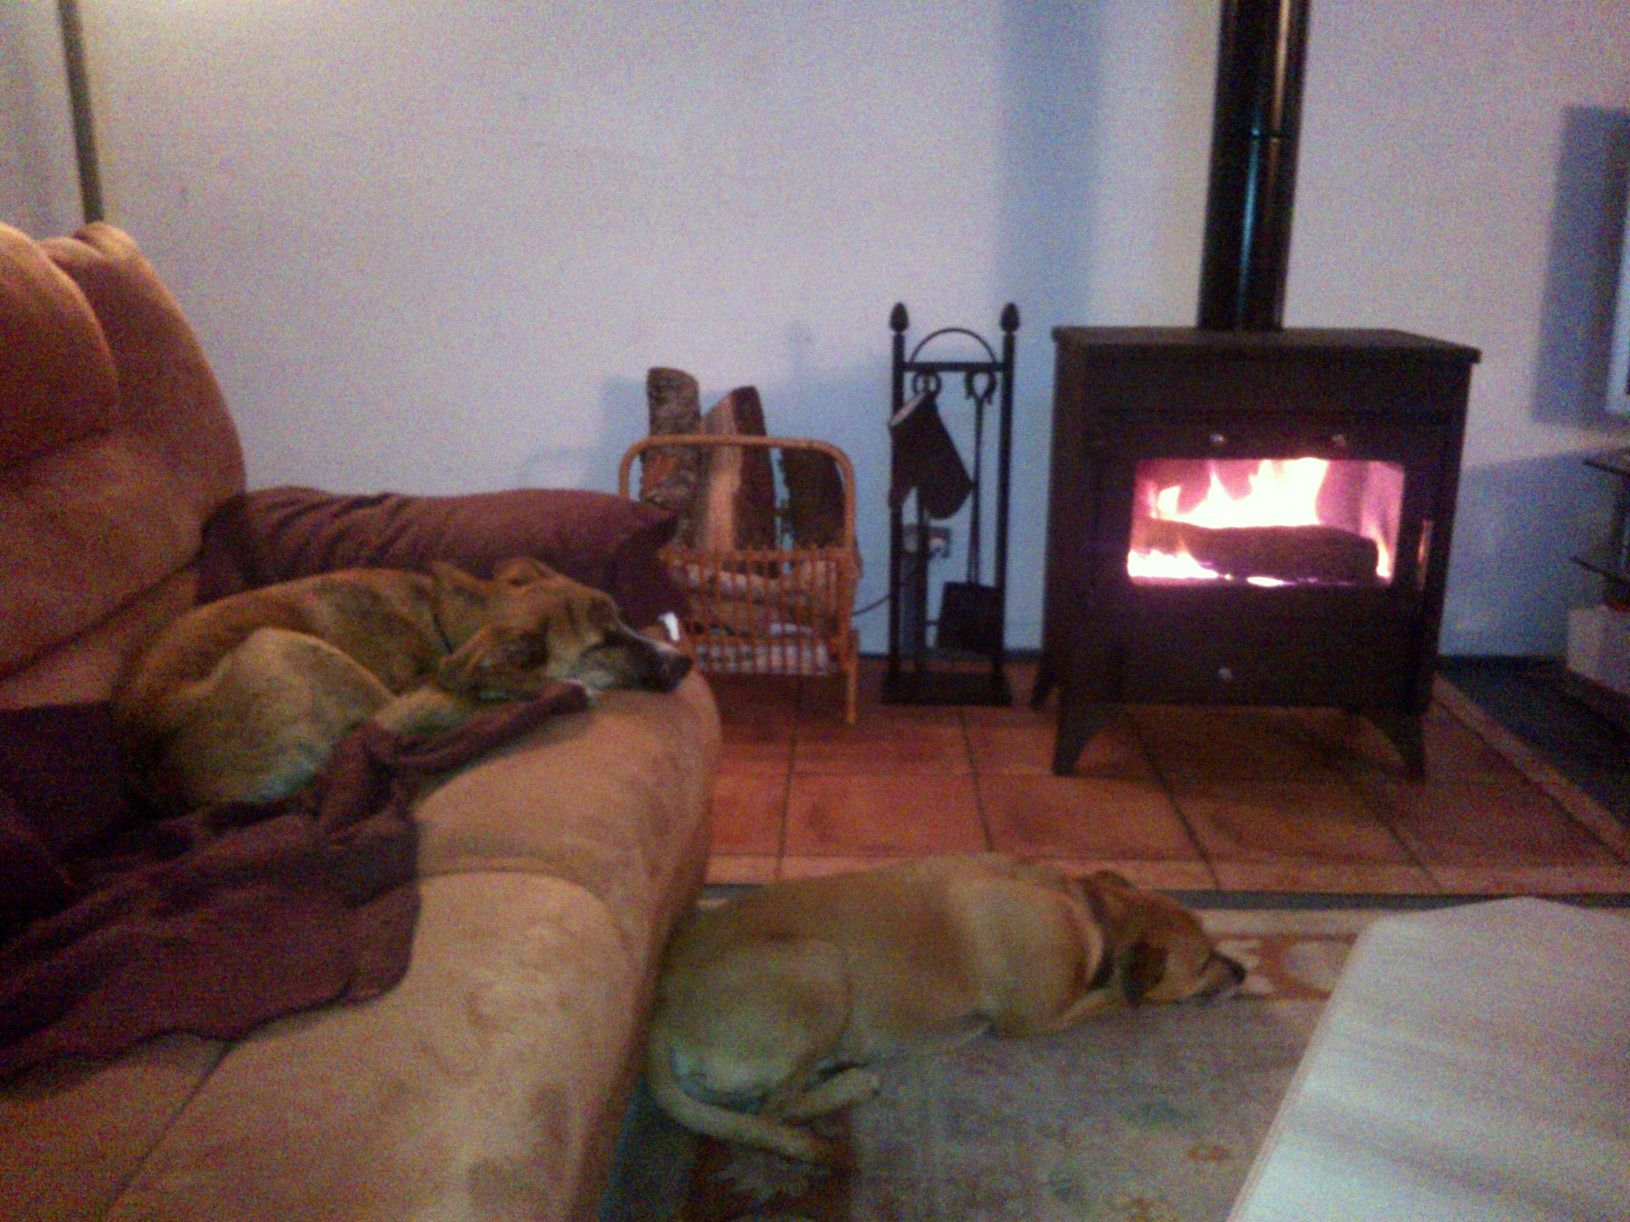 Think they are happy the fire is now working